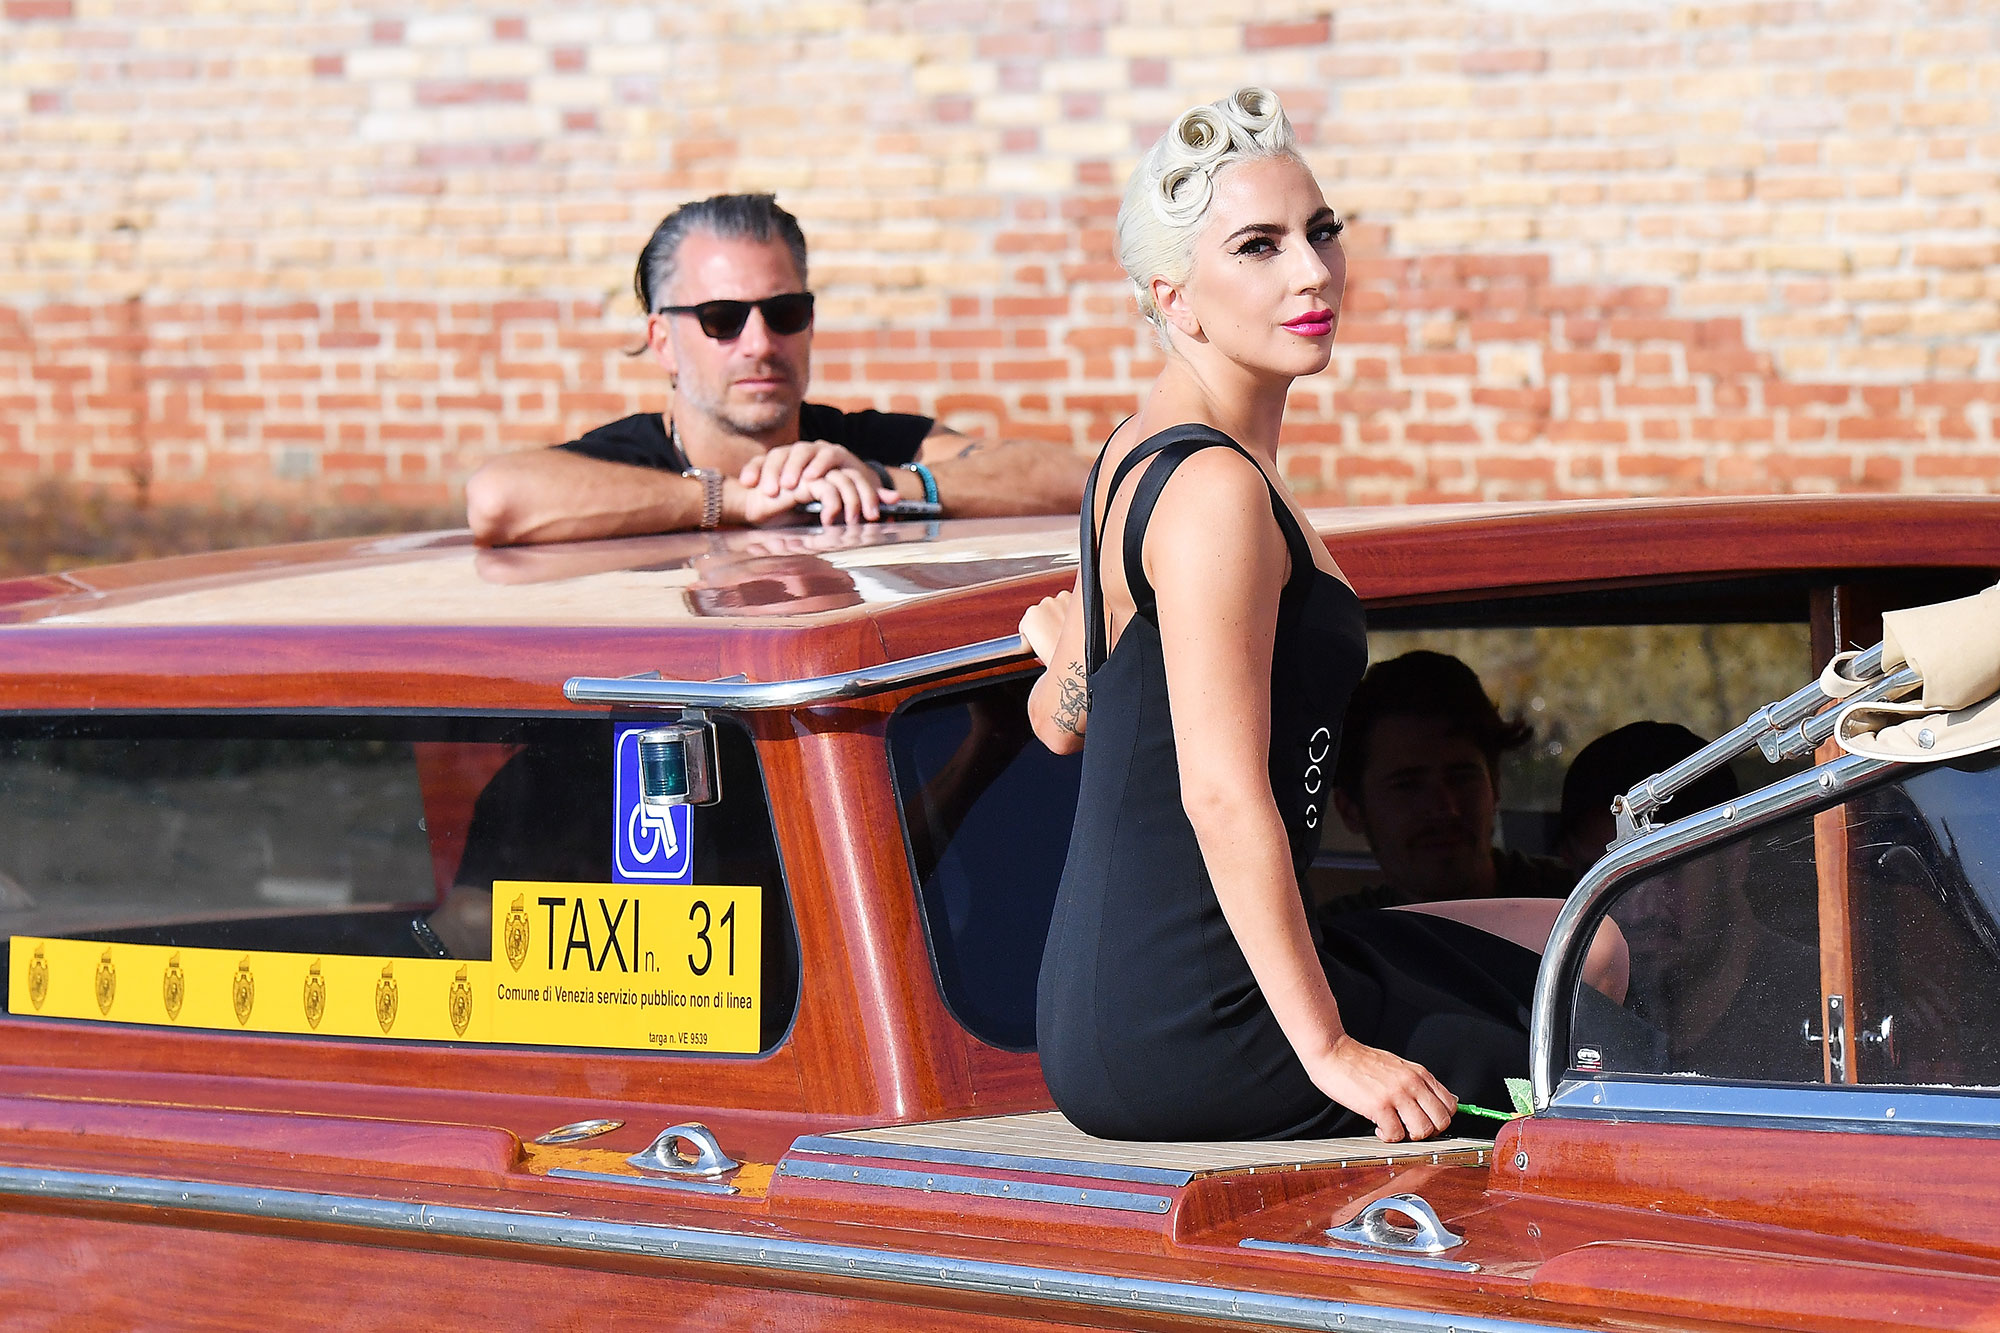 """Lady Gaga and Christian Carino - Gaga and Carino bumped into each other at CAA's pre-Oscars party on February 22. """"Christian Carino walked into the party … [and] said hi to Gaga at one point. But it was brief and then he went to another room,"""" a source told Us exclusively, noting that the New York native spent the rest of the evening chatting """"in a corner"""" with her A Star Is Born costar and director, Bradley Cooper ."""